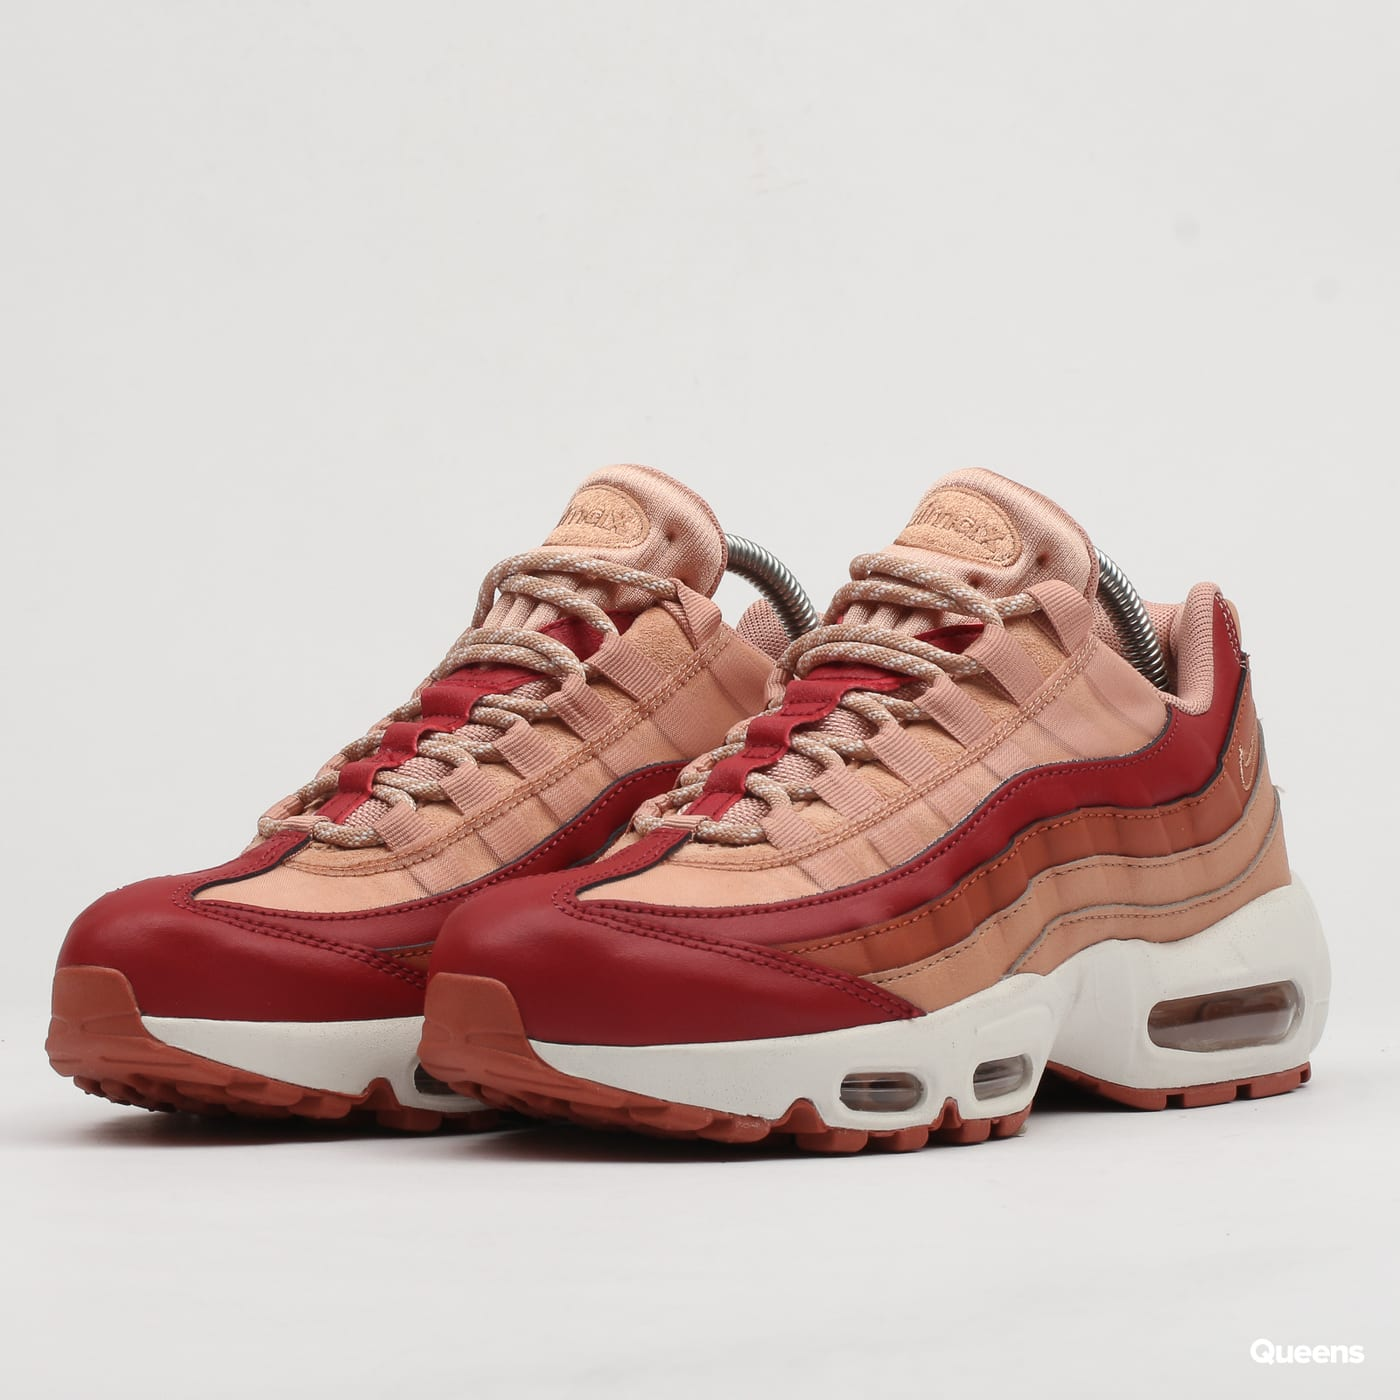 100% authentic d0335 8cd12 Nike WMNS Air Max 95 team crimson / dusty peach